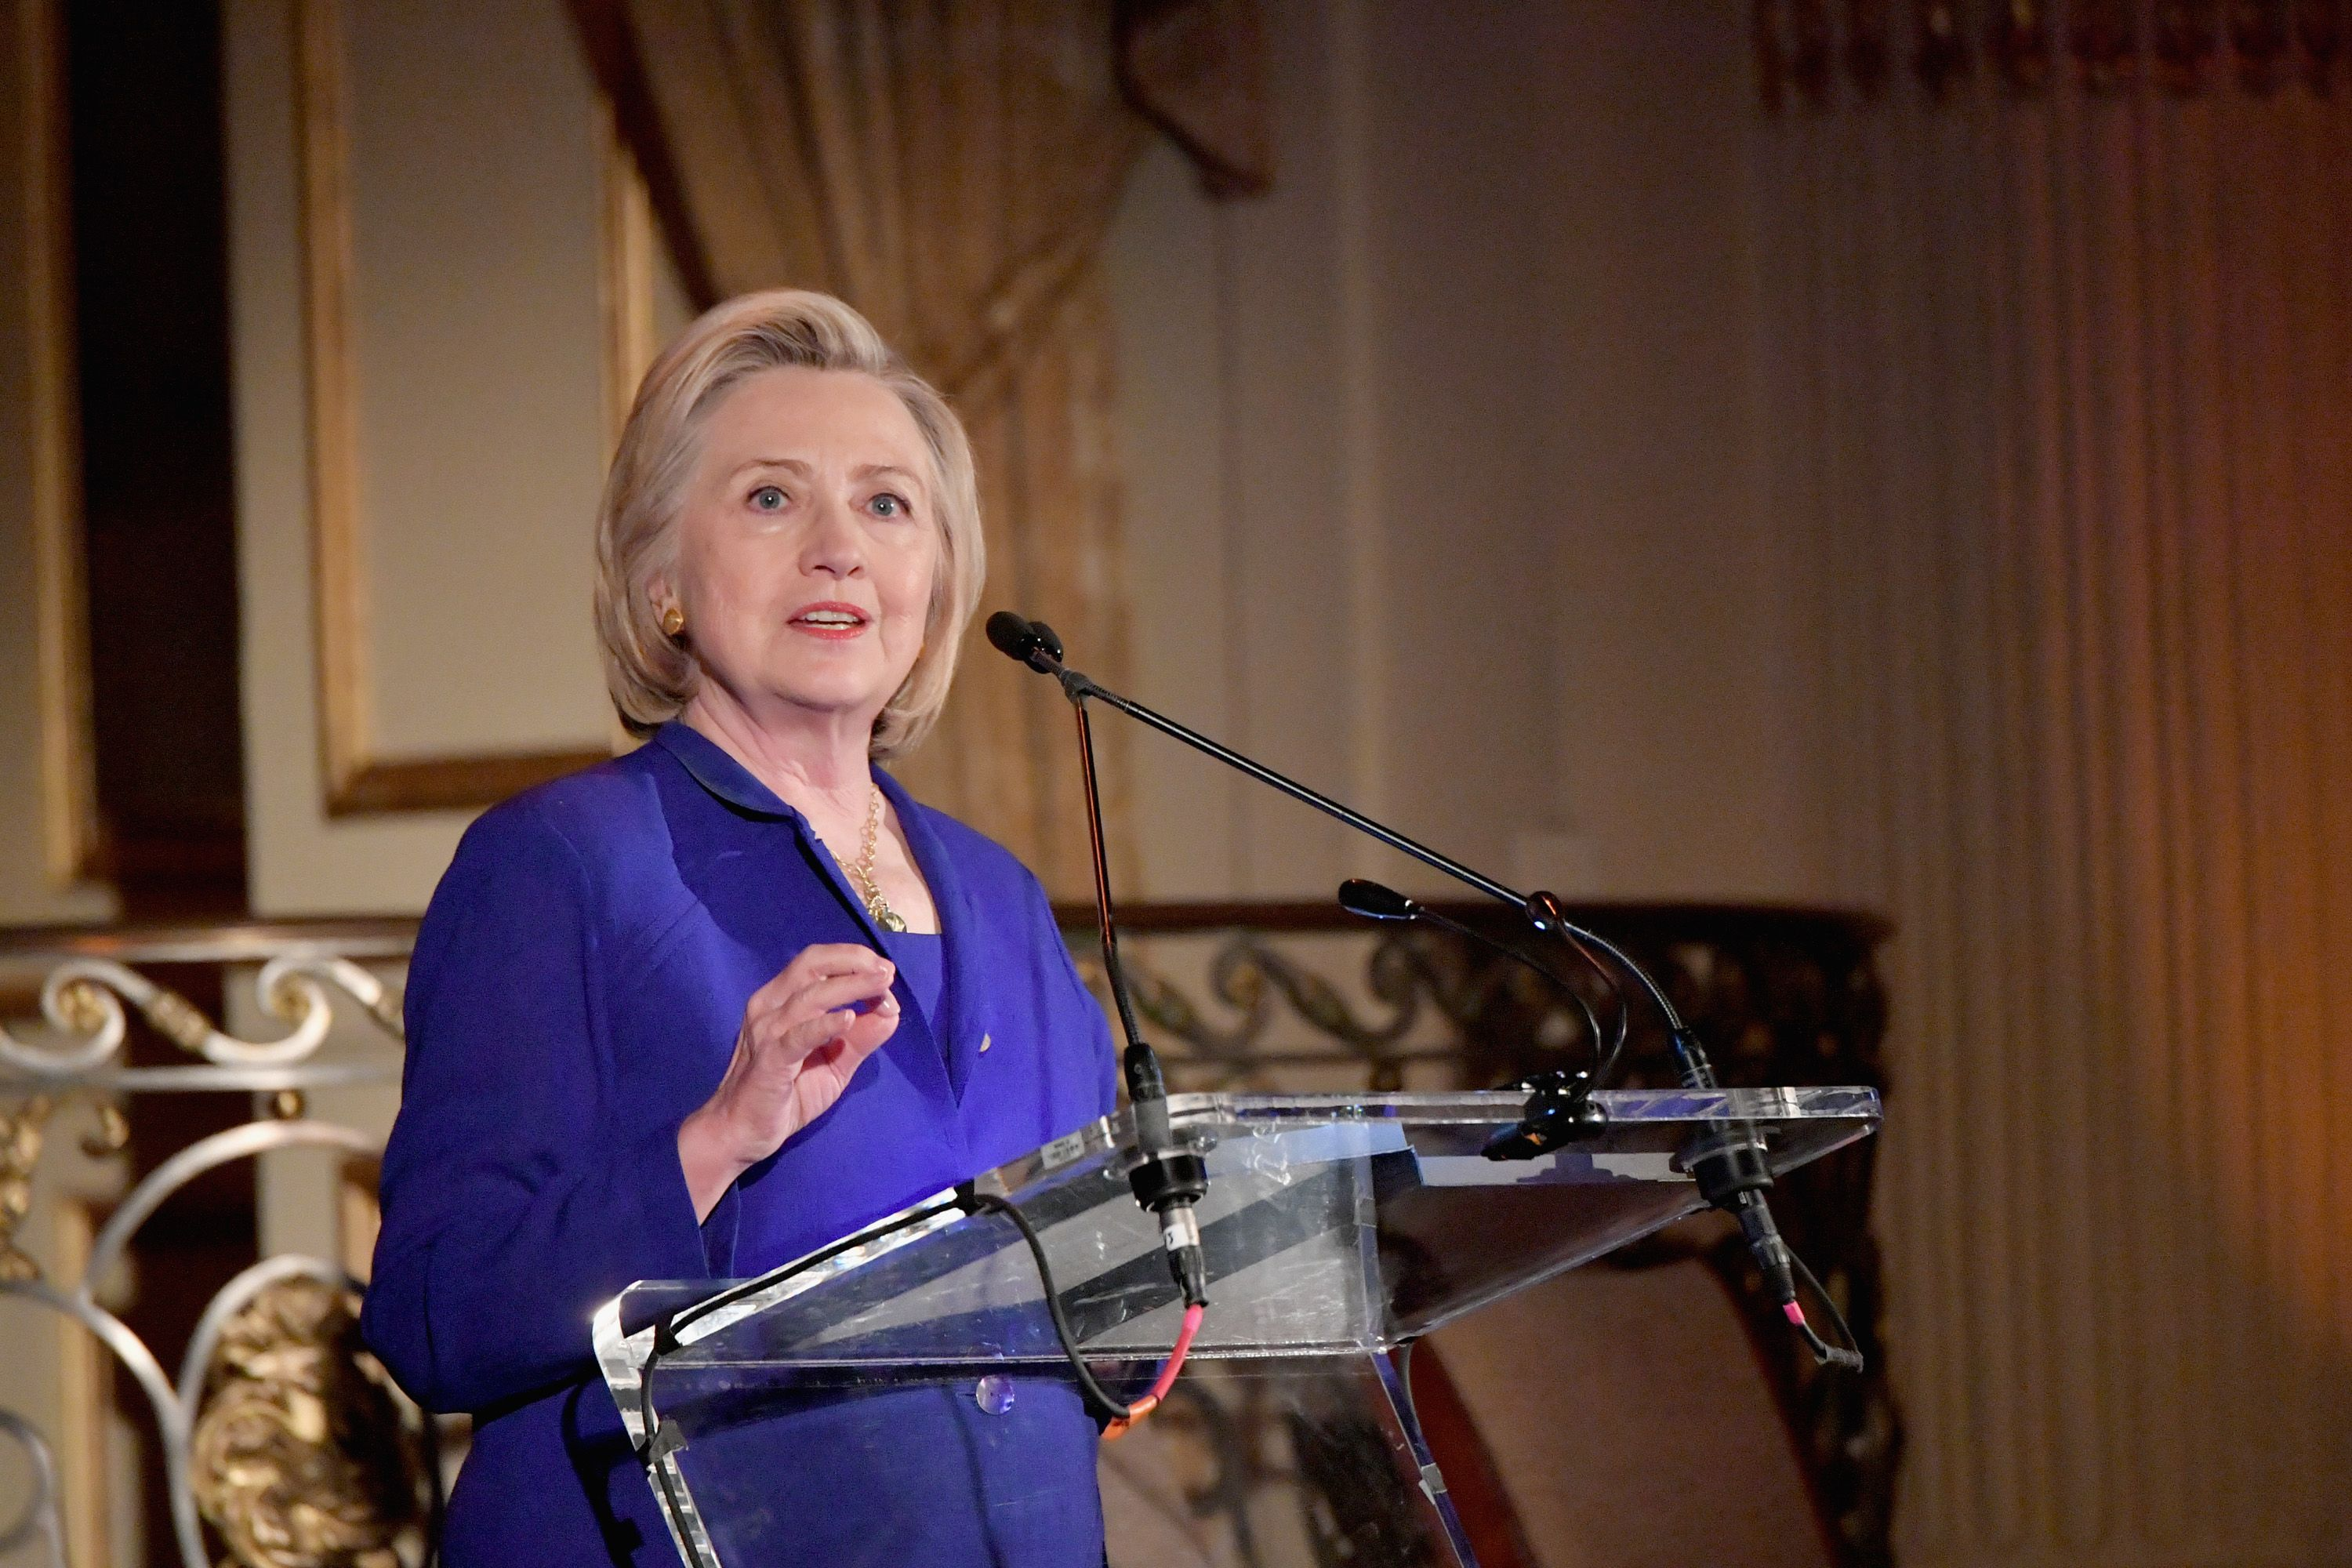 'I'm Not Running' In 2020, Hillary Claims